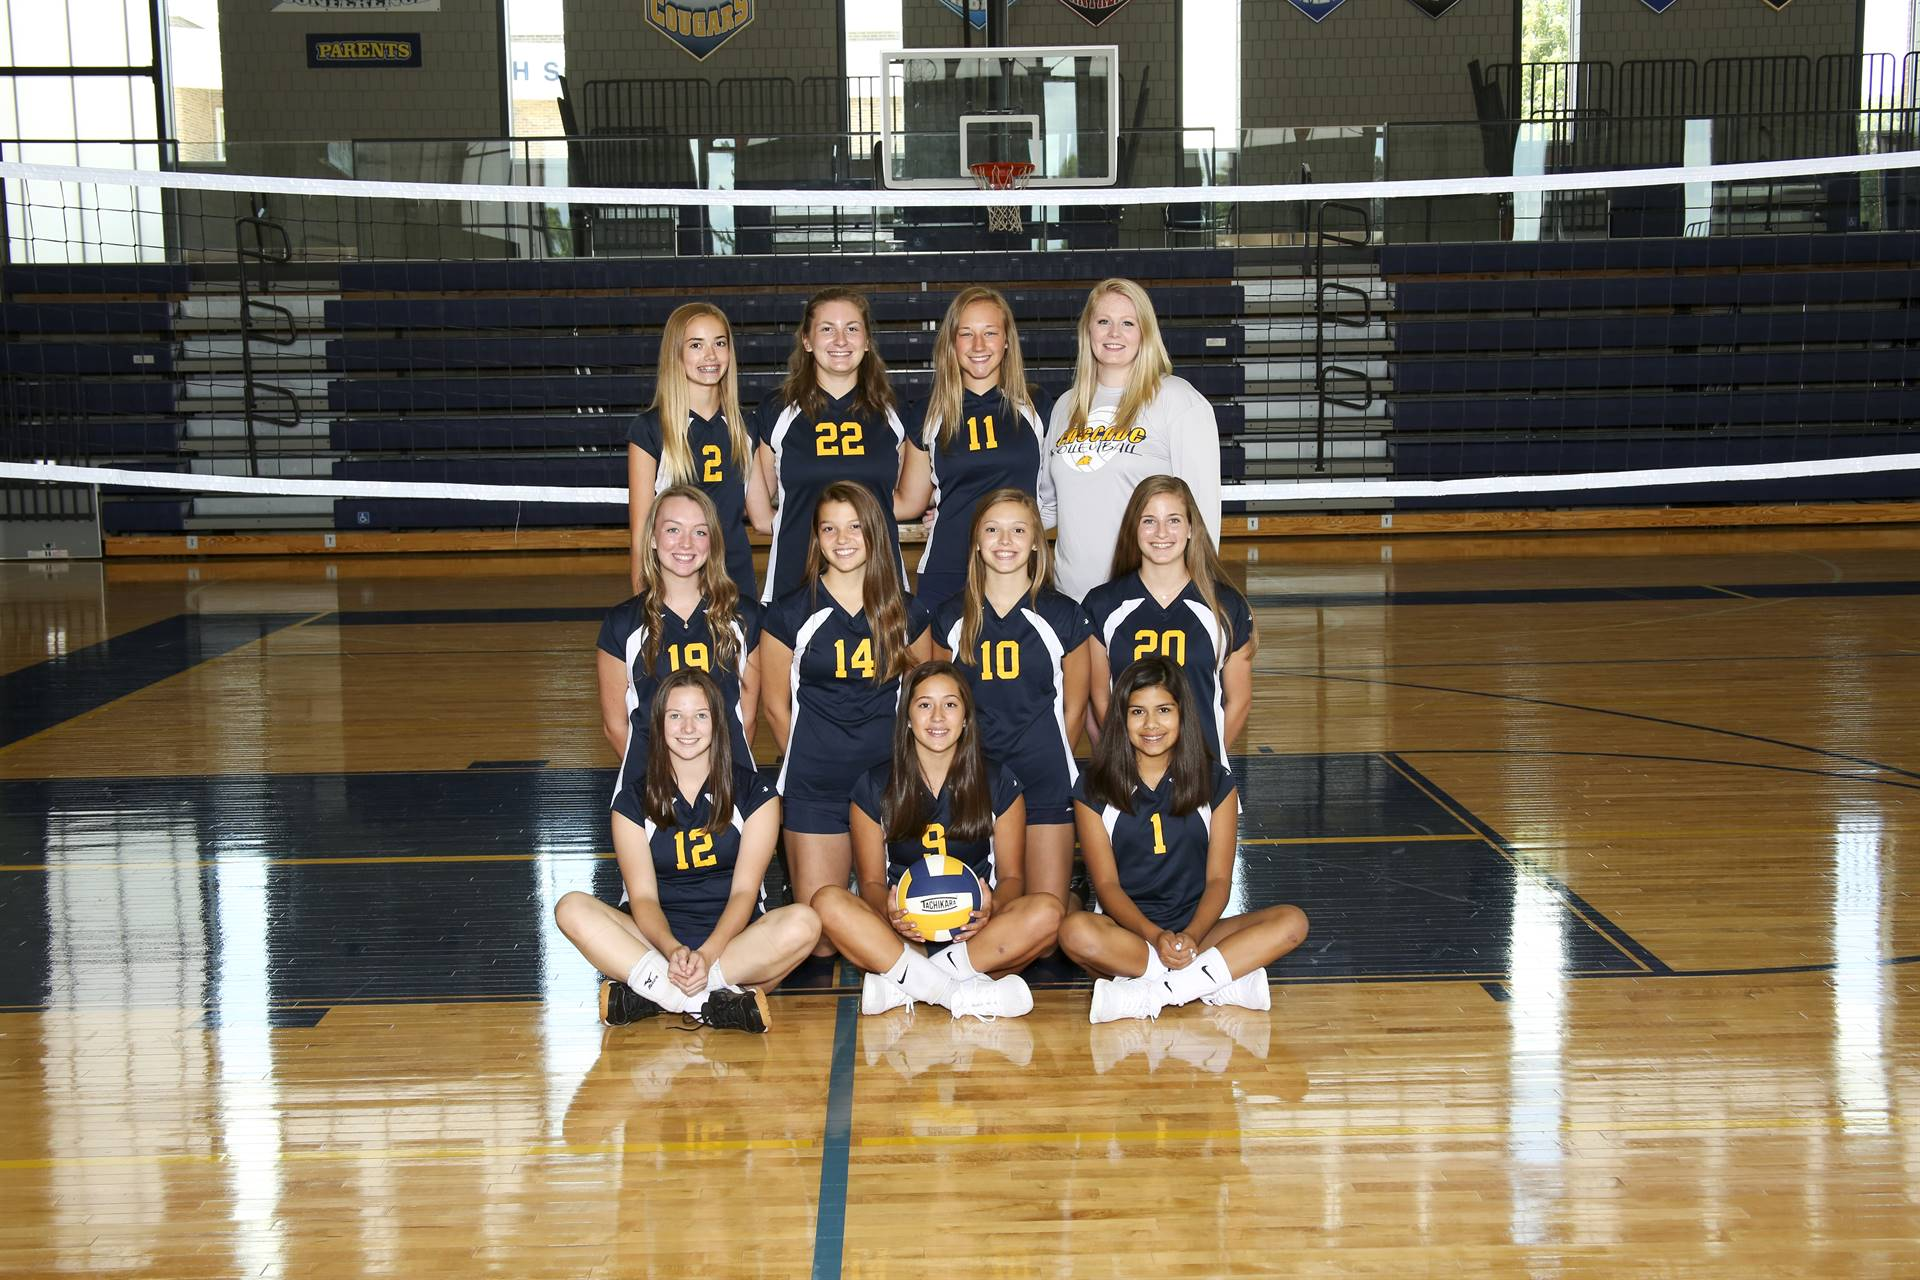 Sophomore Volleyball team